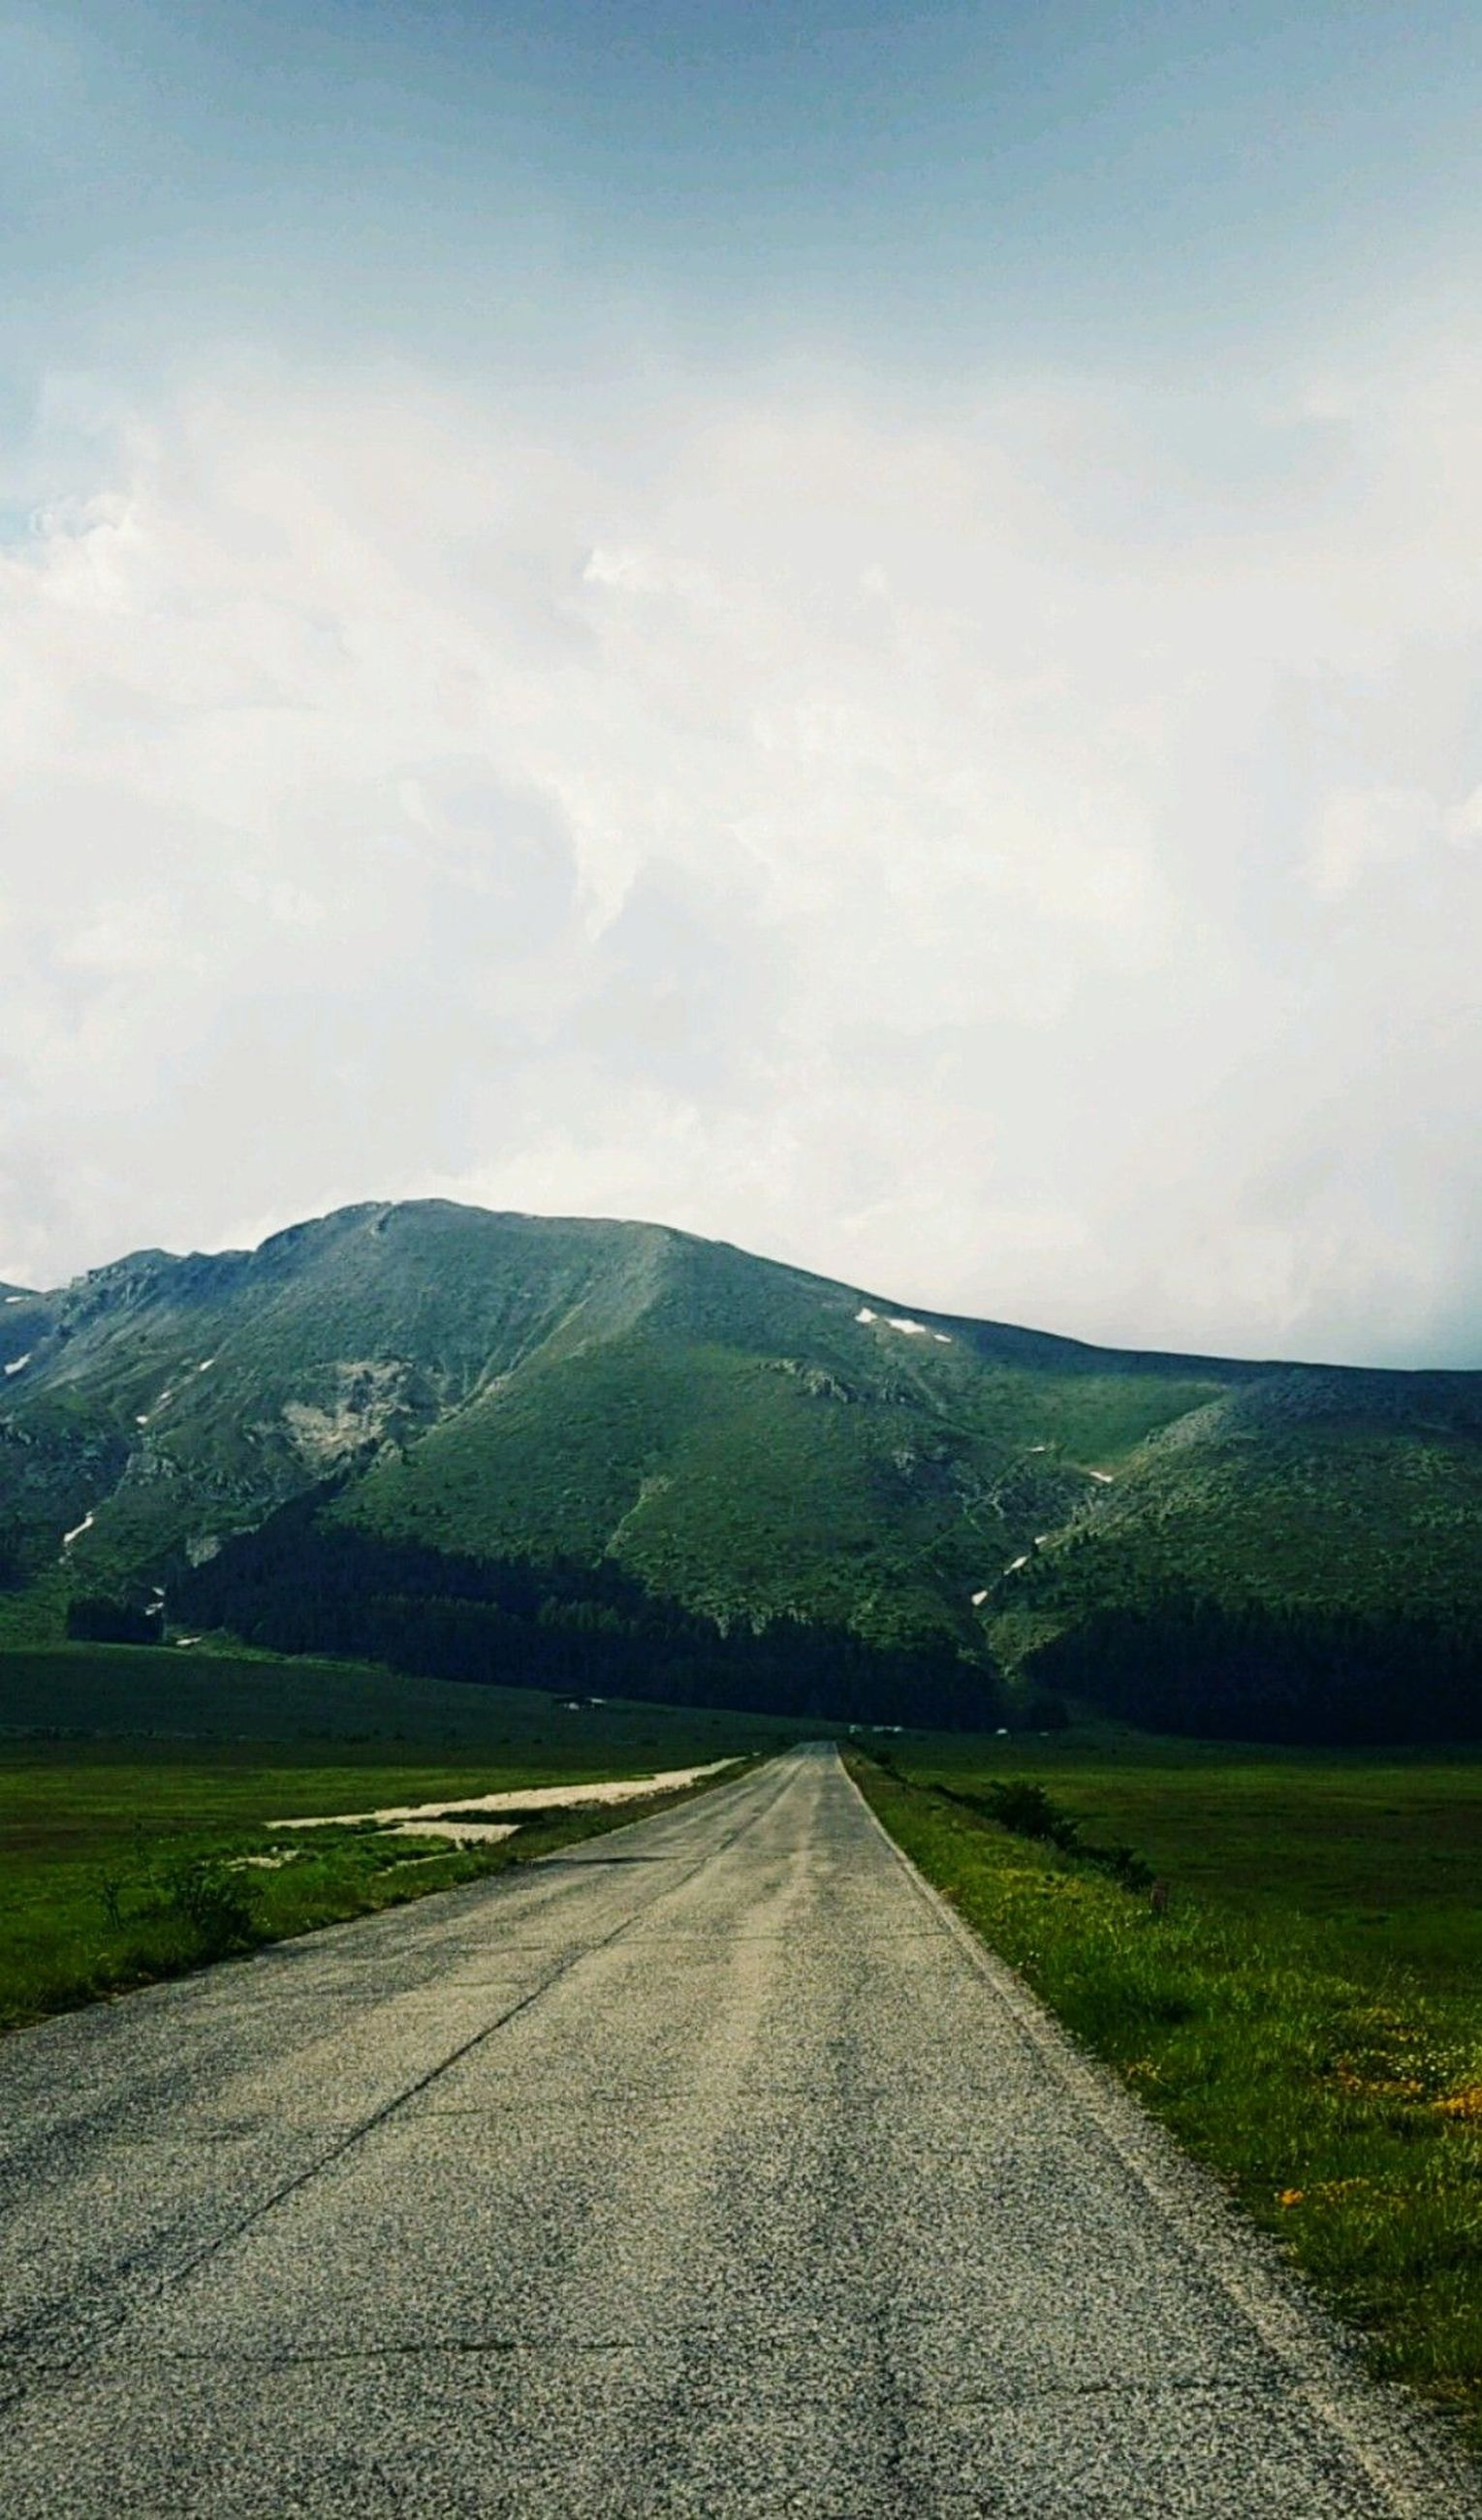 road, sky, direction, landscape, cloud - sky, the way forward, transportation, mountain, environment, tranquility, beauty in nature, tranquil scene, nature, no people, day, scenics - nature, non-urban scene, diminishing perspective, grass, plant, outdoors, long, mountain range